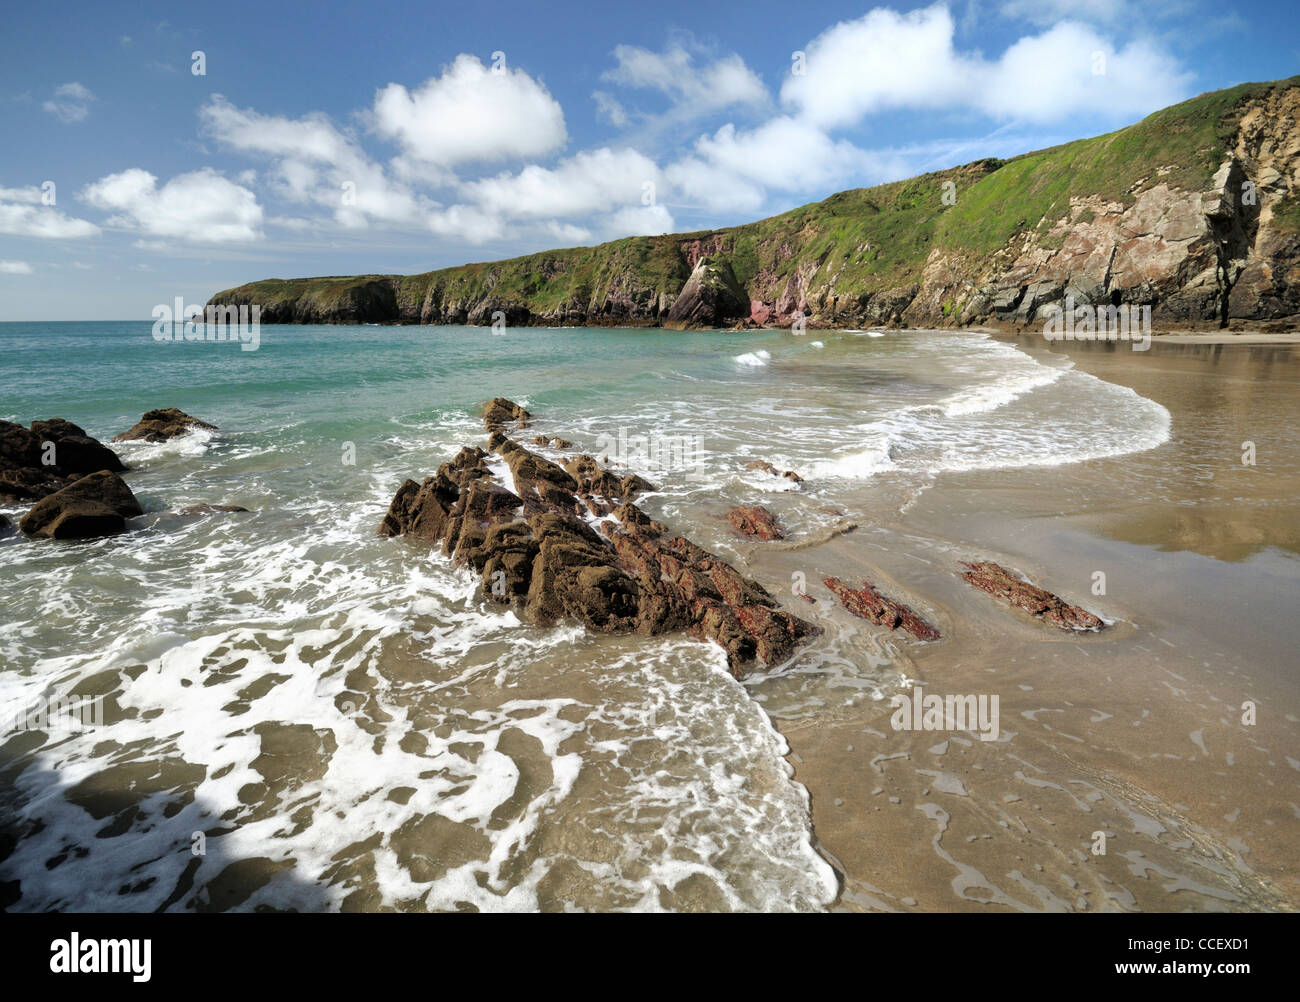 Caerfai Beach near the tiny city of St Davids on a sunny day with gentle surf lapping the shore - Stock Image